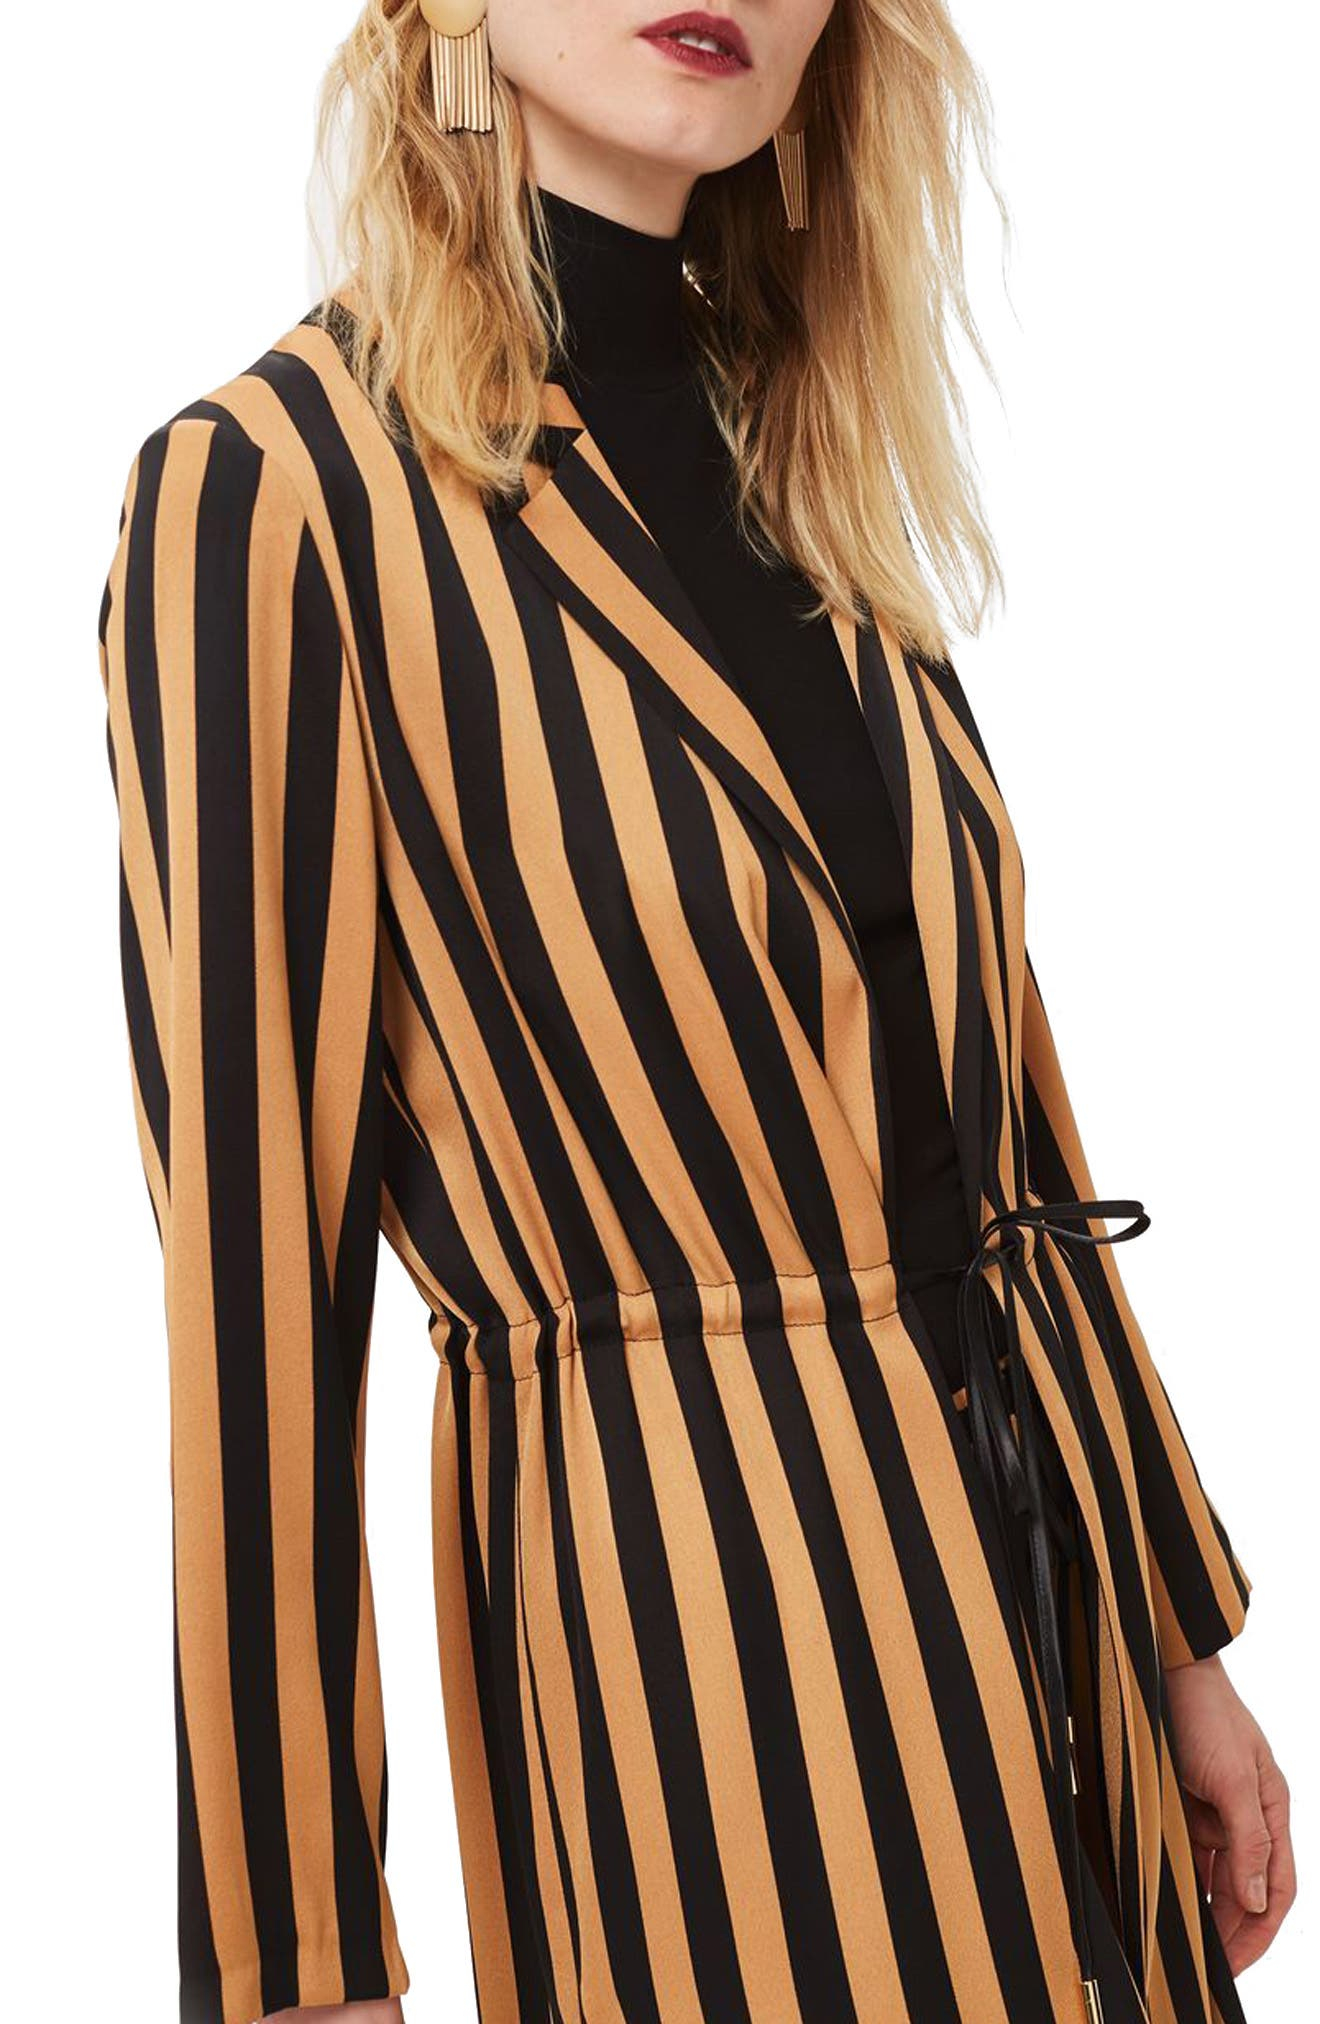 TOPSHOP,                             Stripe Duster Jacket,                             Main thumbnail 1, color,                             201